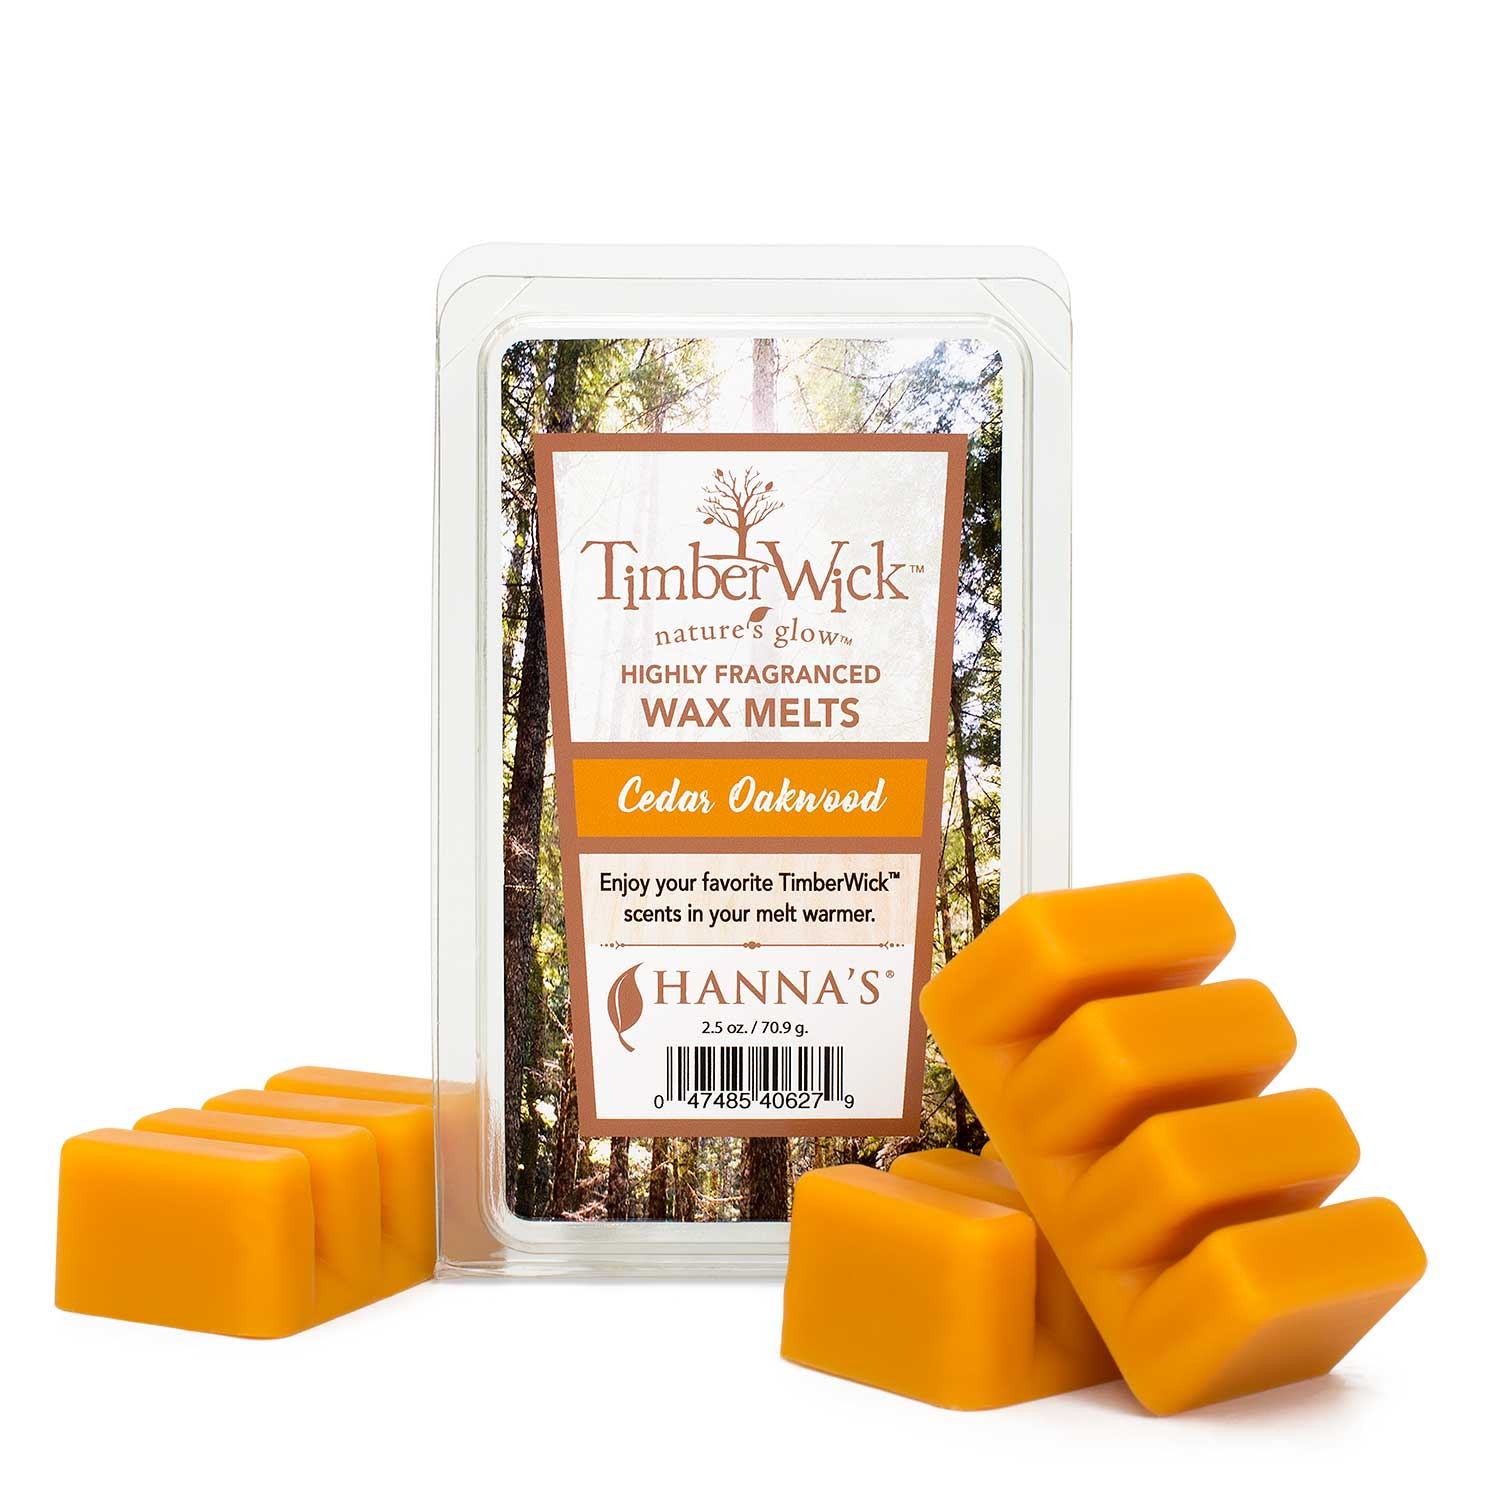 Timberwick Cedar Oakwood Wax Melts 6 Pack Melts Candlemart.com $ 12.99